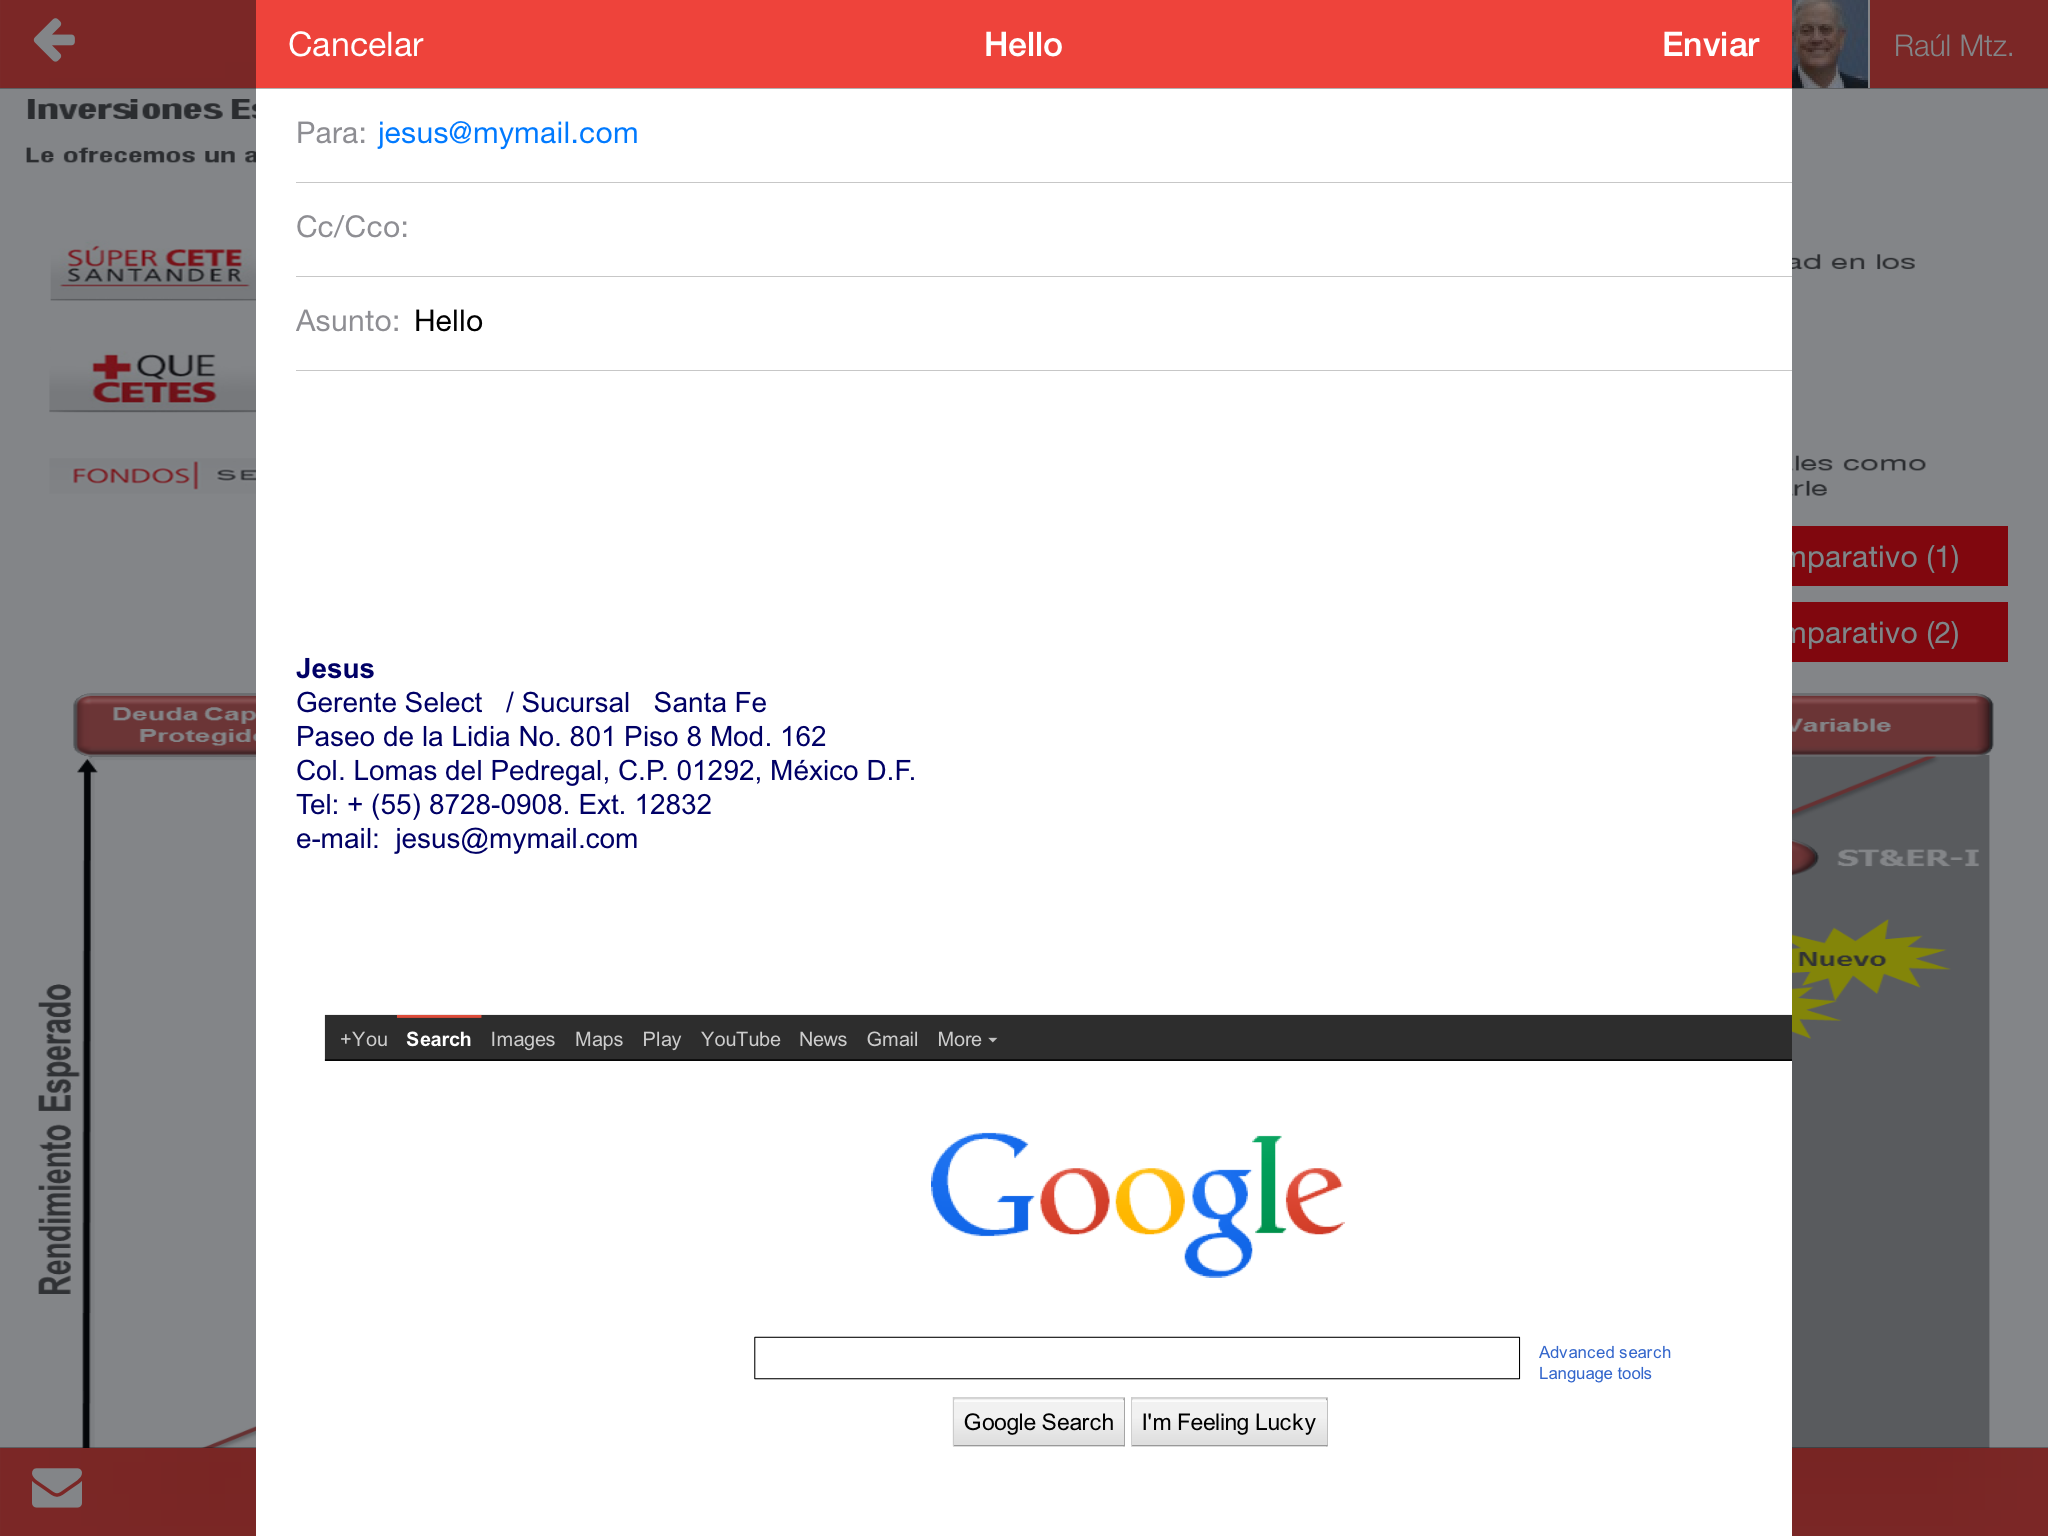 how to attach a document to an email